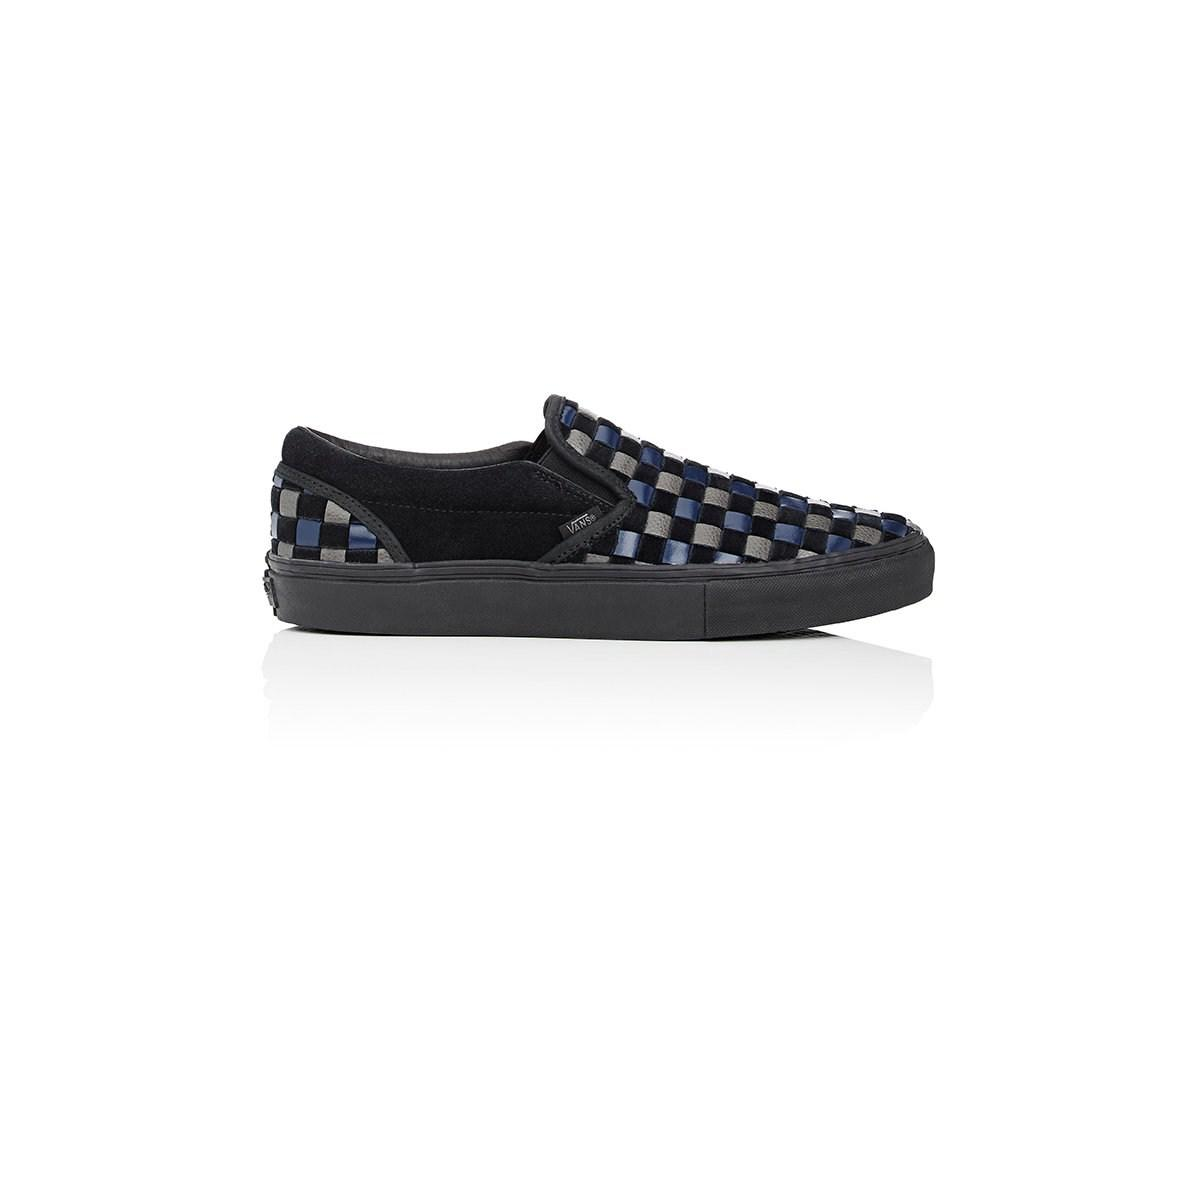 sports shoes f176c 455fe Lyst - Vans Woven Leather  Suede Slip-on Sneakers in Black f